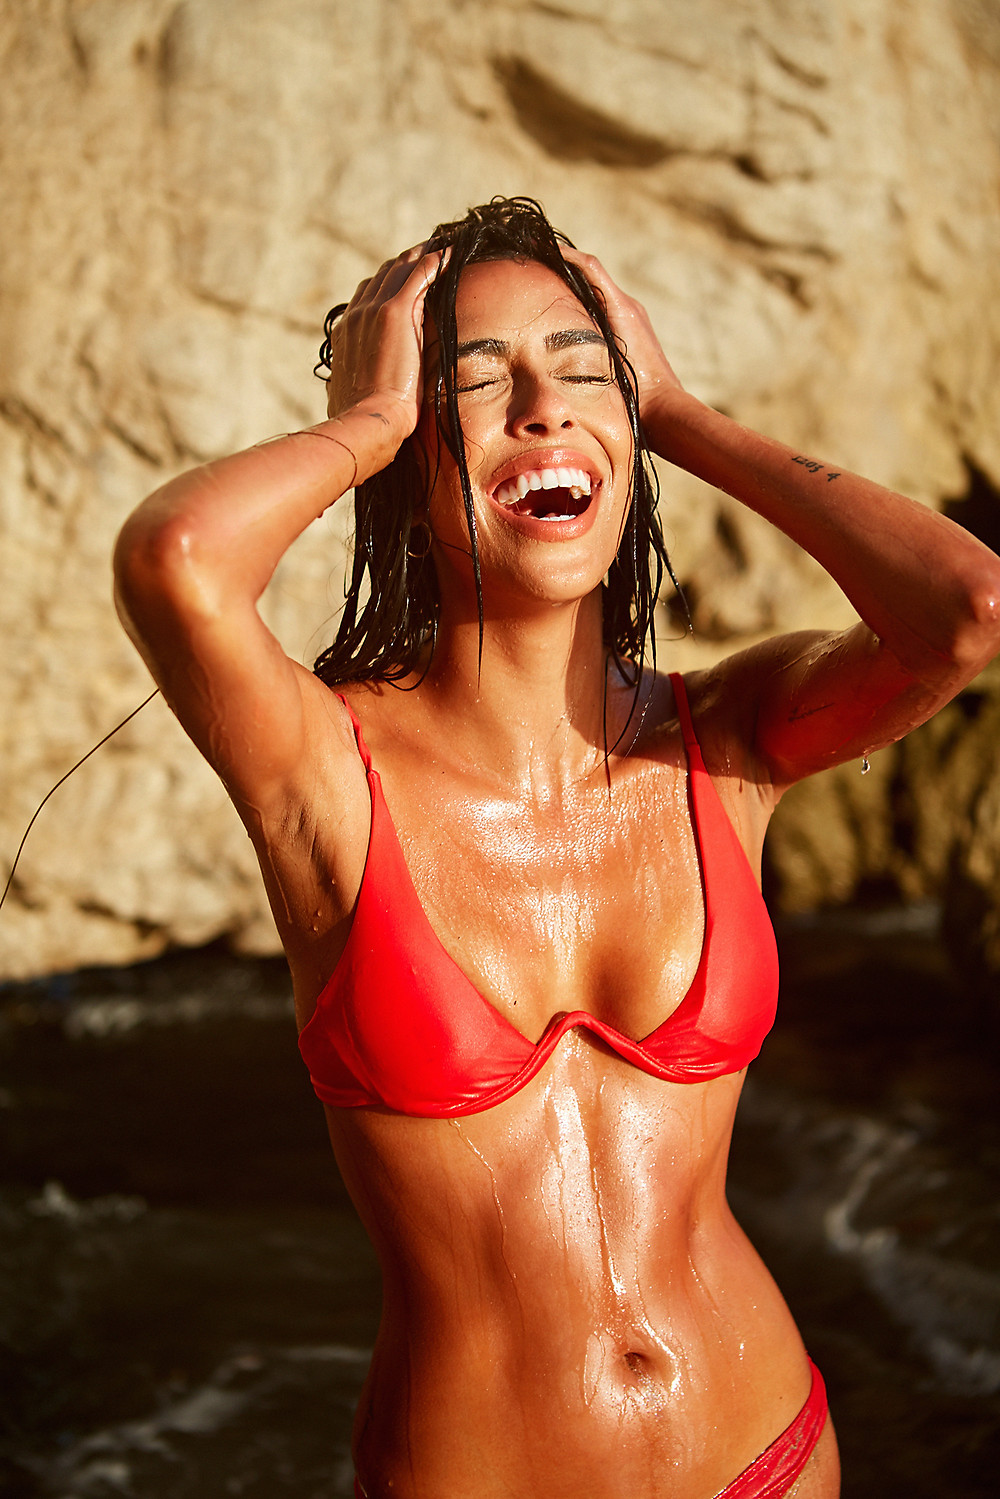 swimwear model Andrea Rodriguez photographed in a sexy bikini by fashion and swimwear photographer Patrick Patton for glamour and lifestyle magazine girlfriend MTRL.